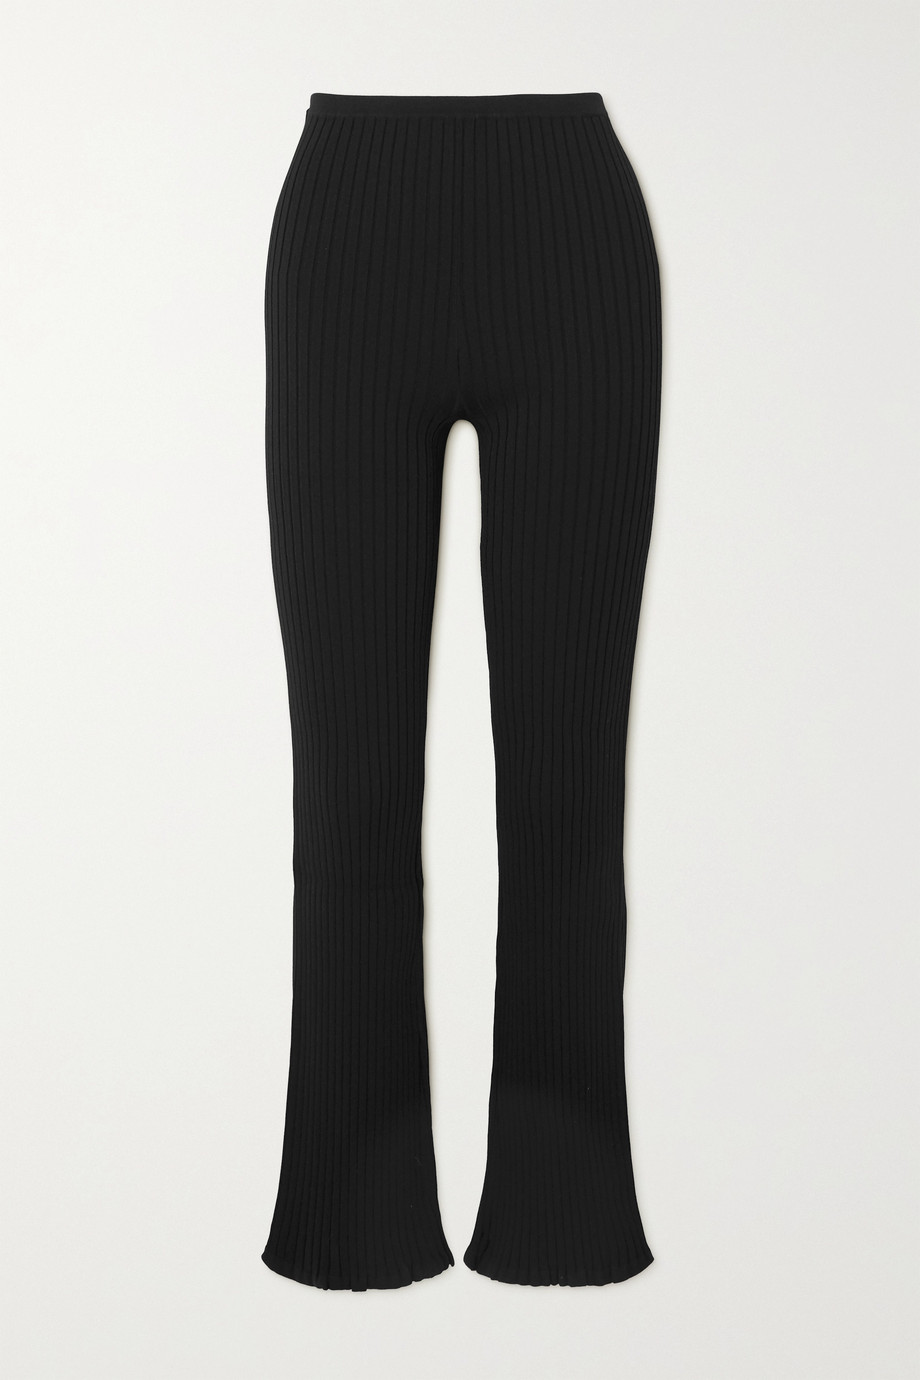 Totême Ry ribbed-knit flared pants